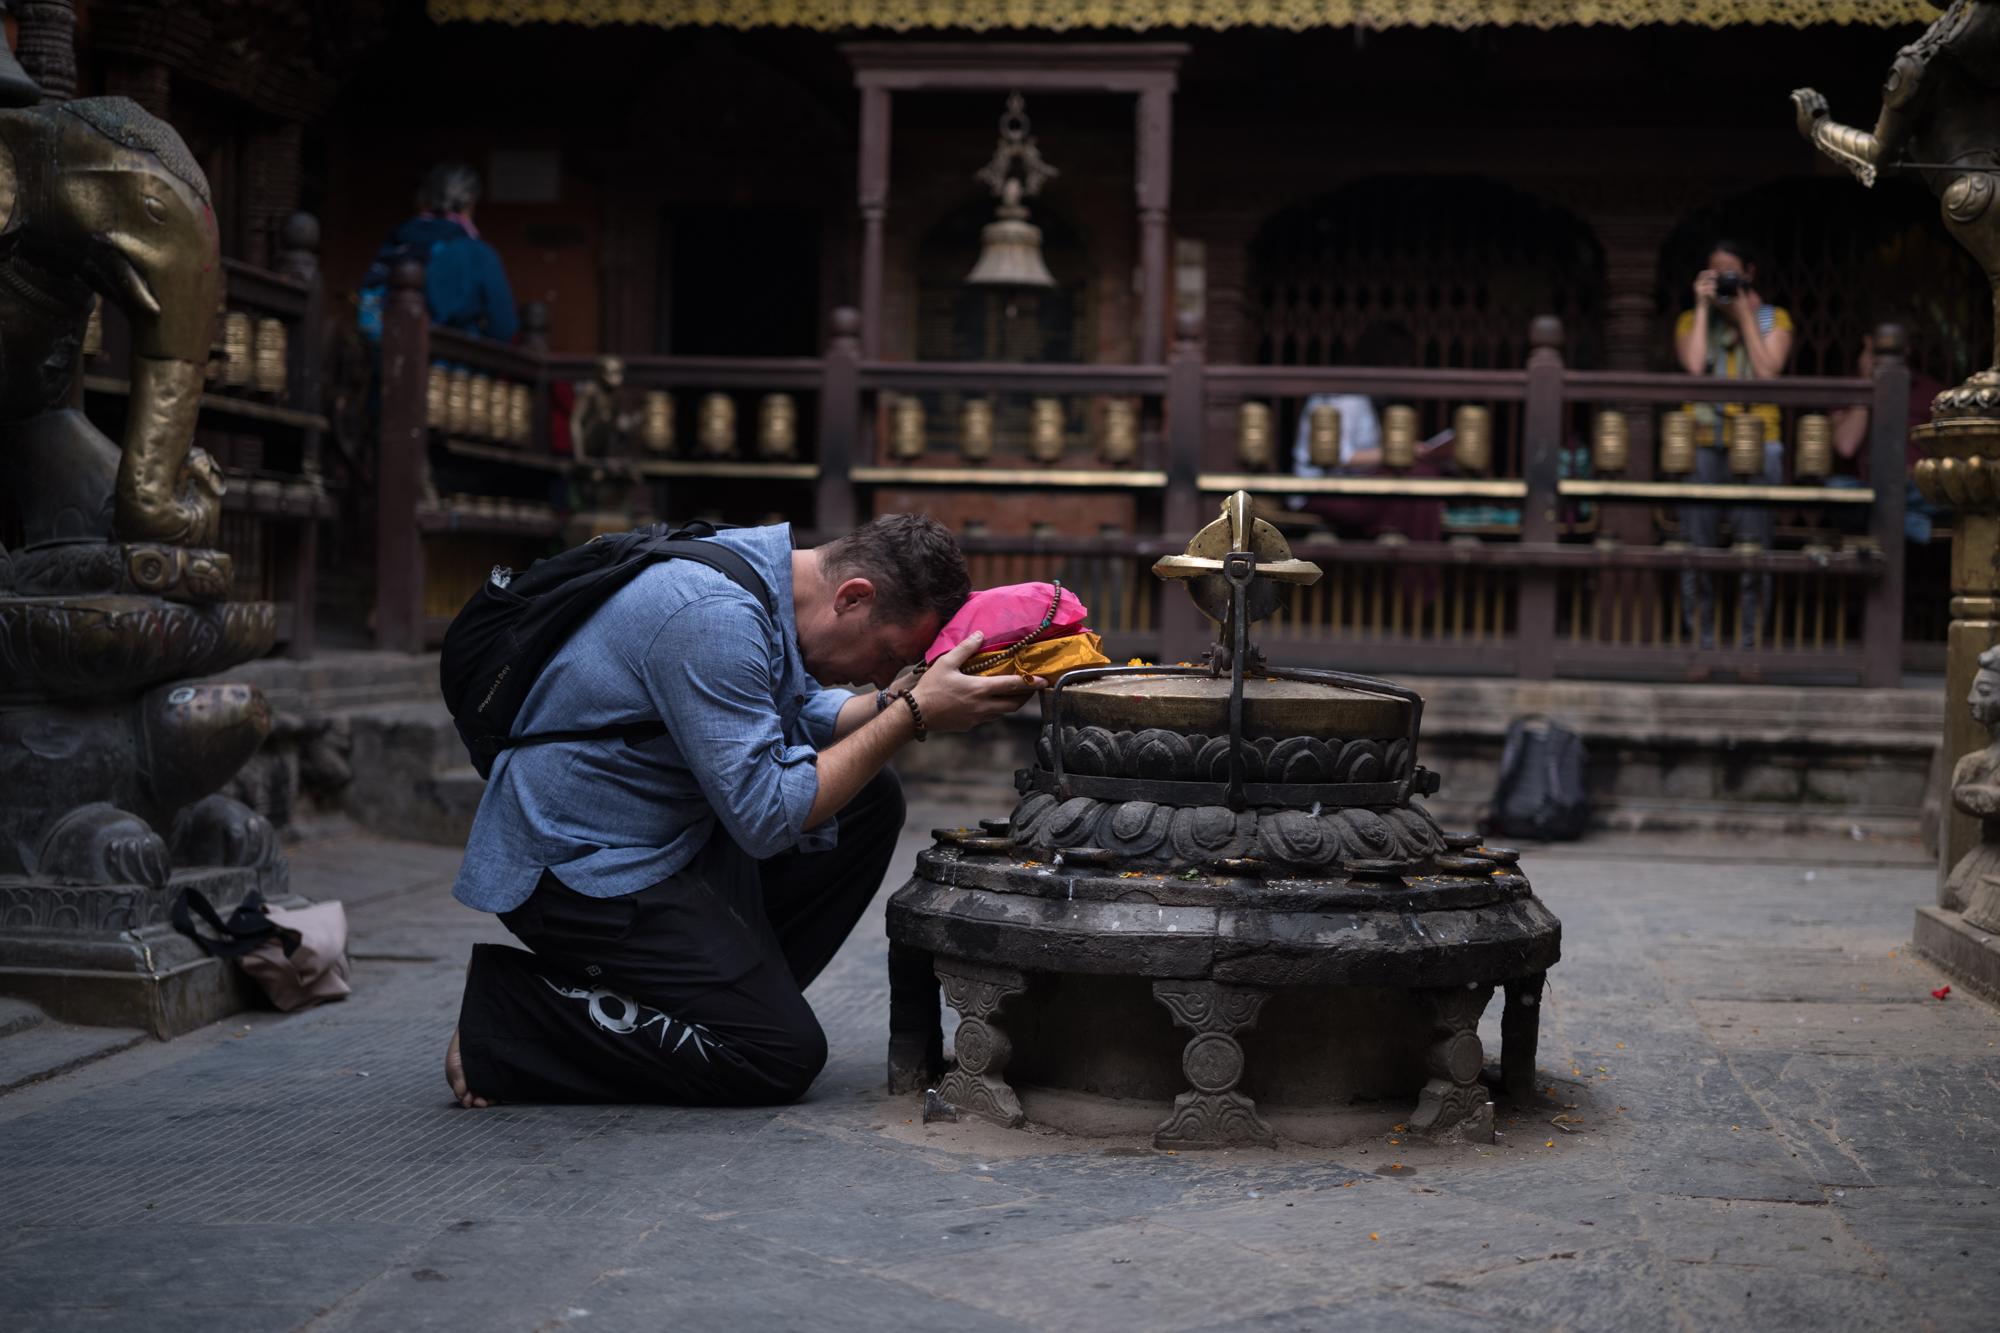 Nepal_Phill O'Leary_26_20181005-L1009687.jpg